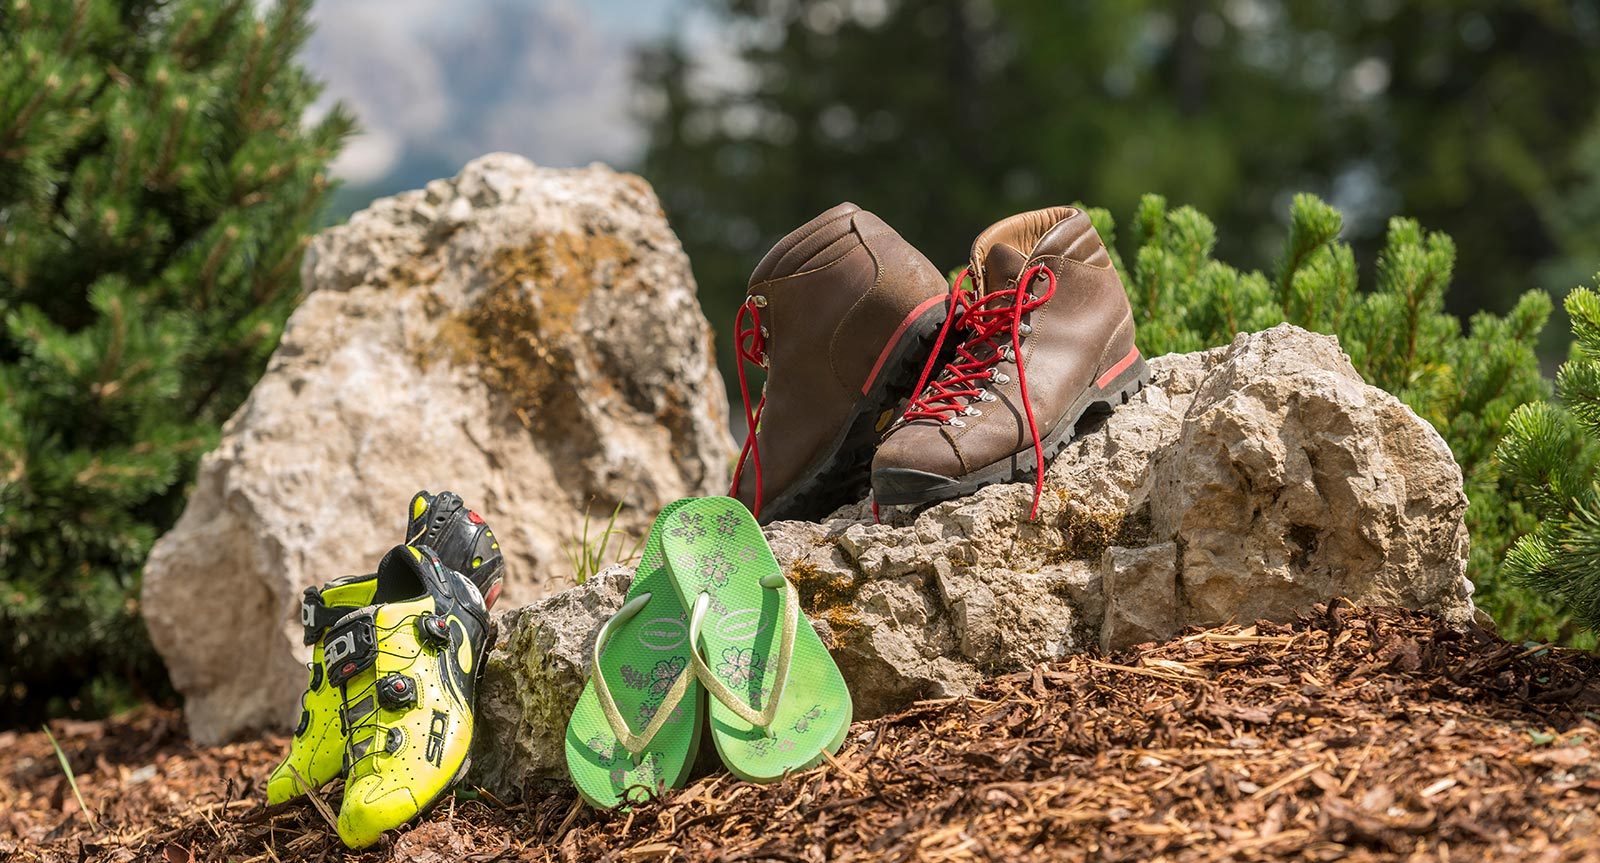 Cycling shoes, hiking shoes and flip flops placed outside next to a stone